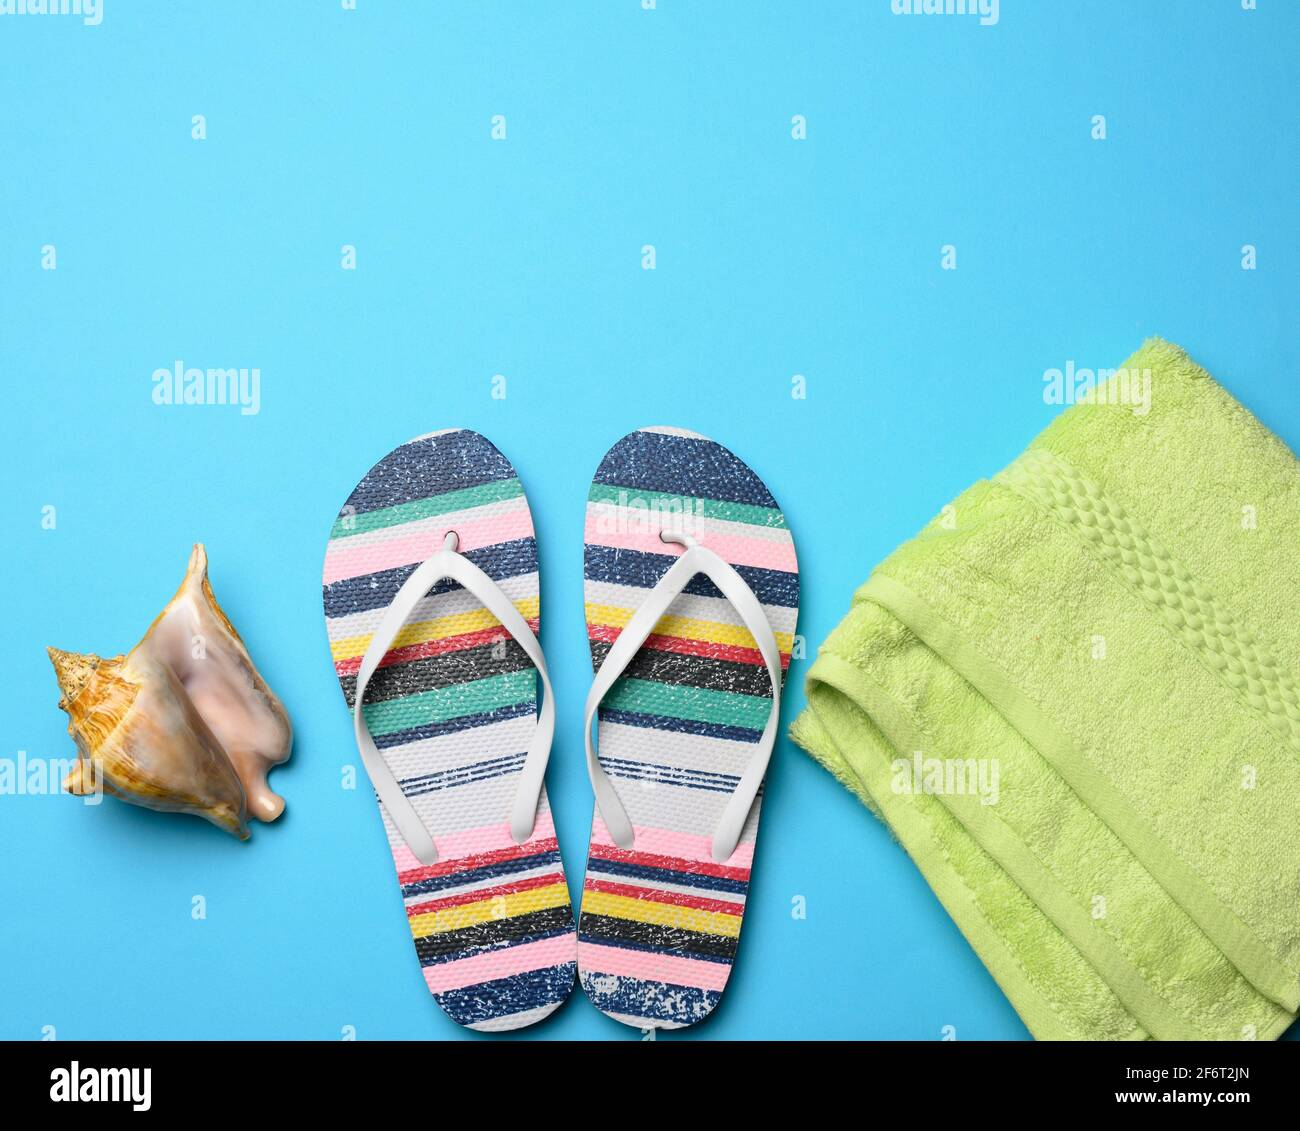 rubber womens striped slippers on a blue background, top view, place for an inscription. Stock Photo